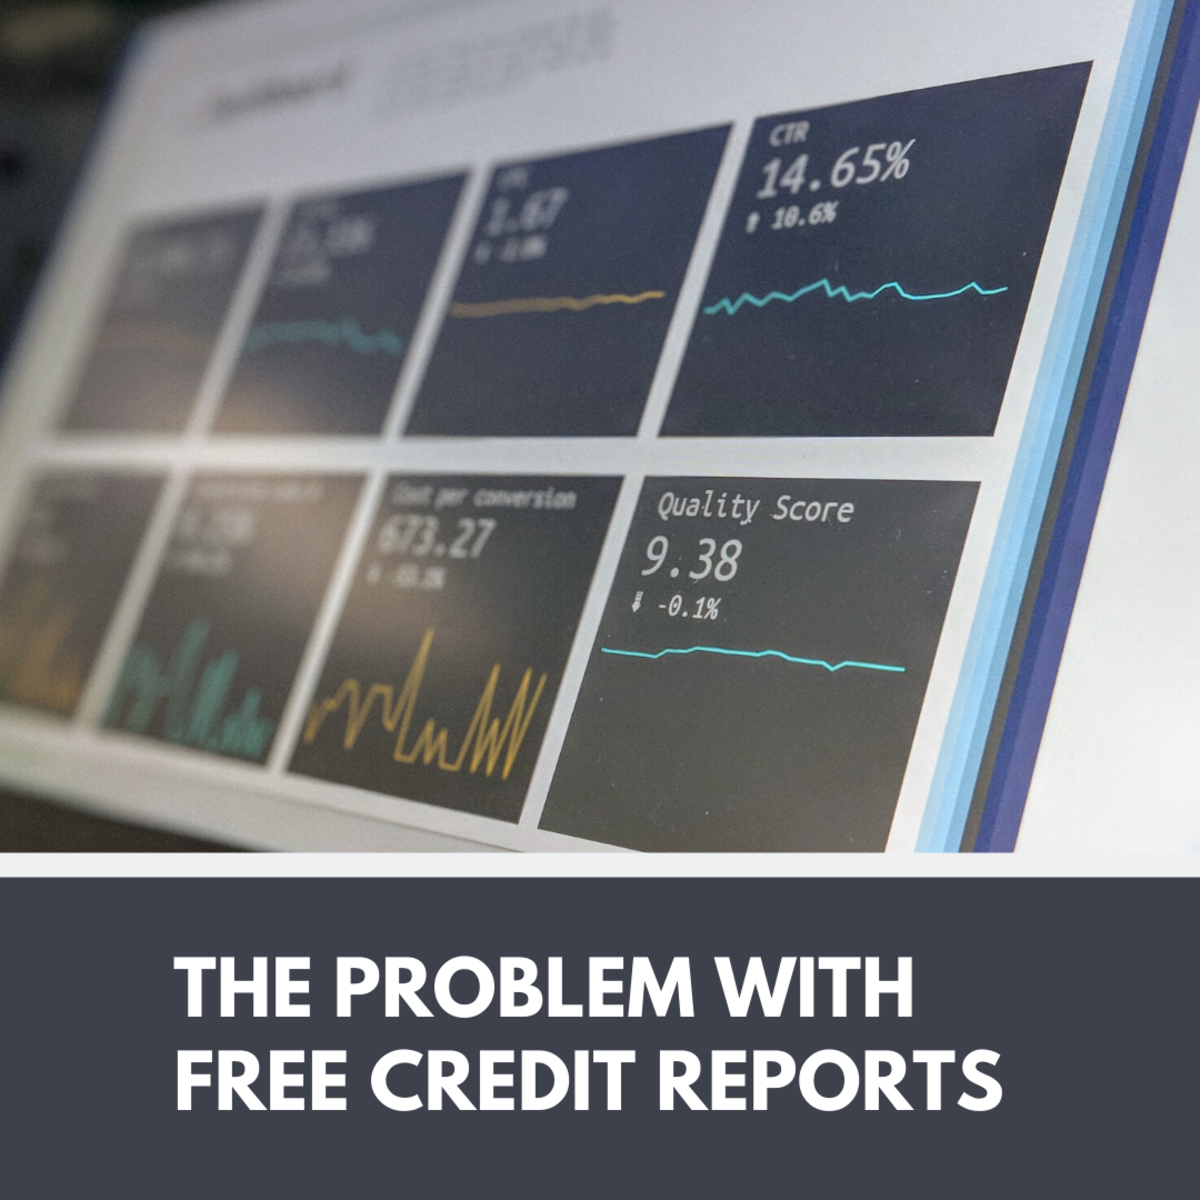 The Problem With Free Credit Reports